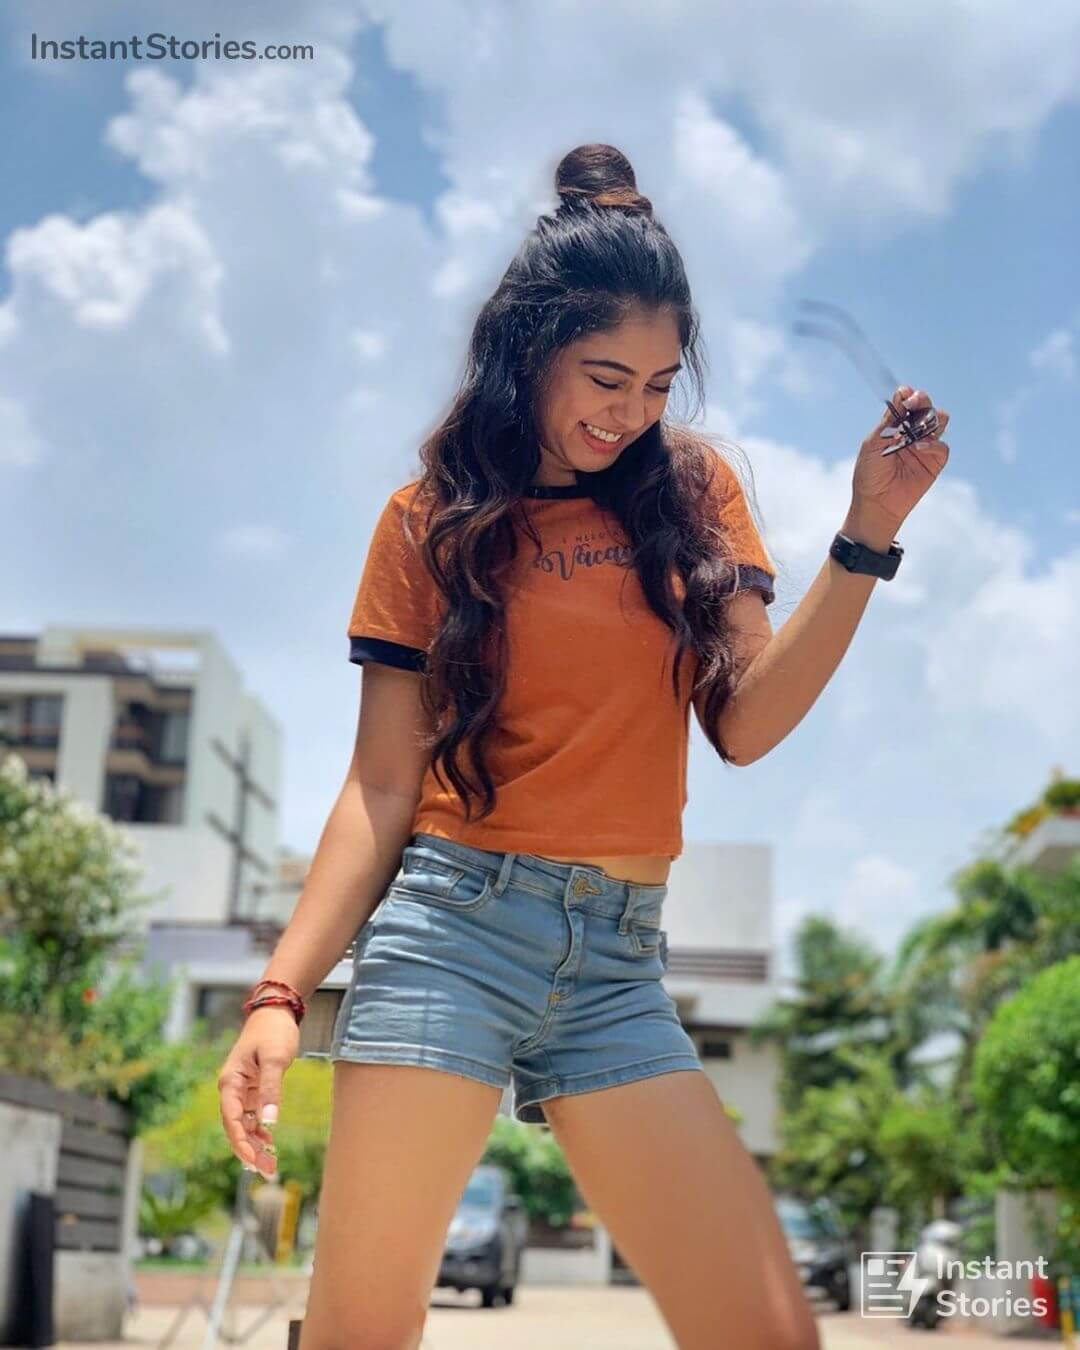 Niti Taylor Engagement, Biography, Height, Age, Images(photos), Marriage, Birthday, Husband, App, Hairstyle, Education, Net Worth, Family, Details, Instagram, Twitter, Wiki, Facebook, Imdb (72)